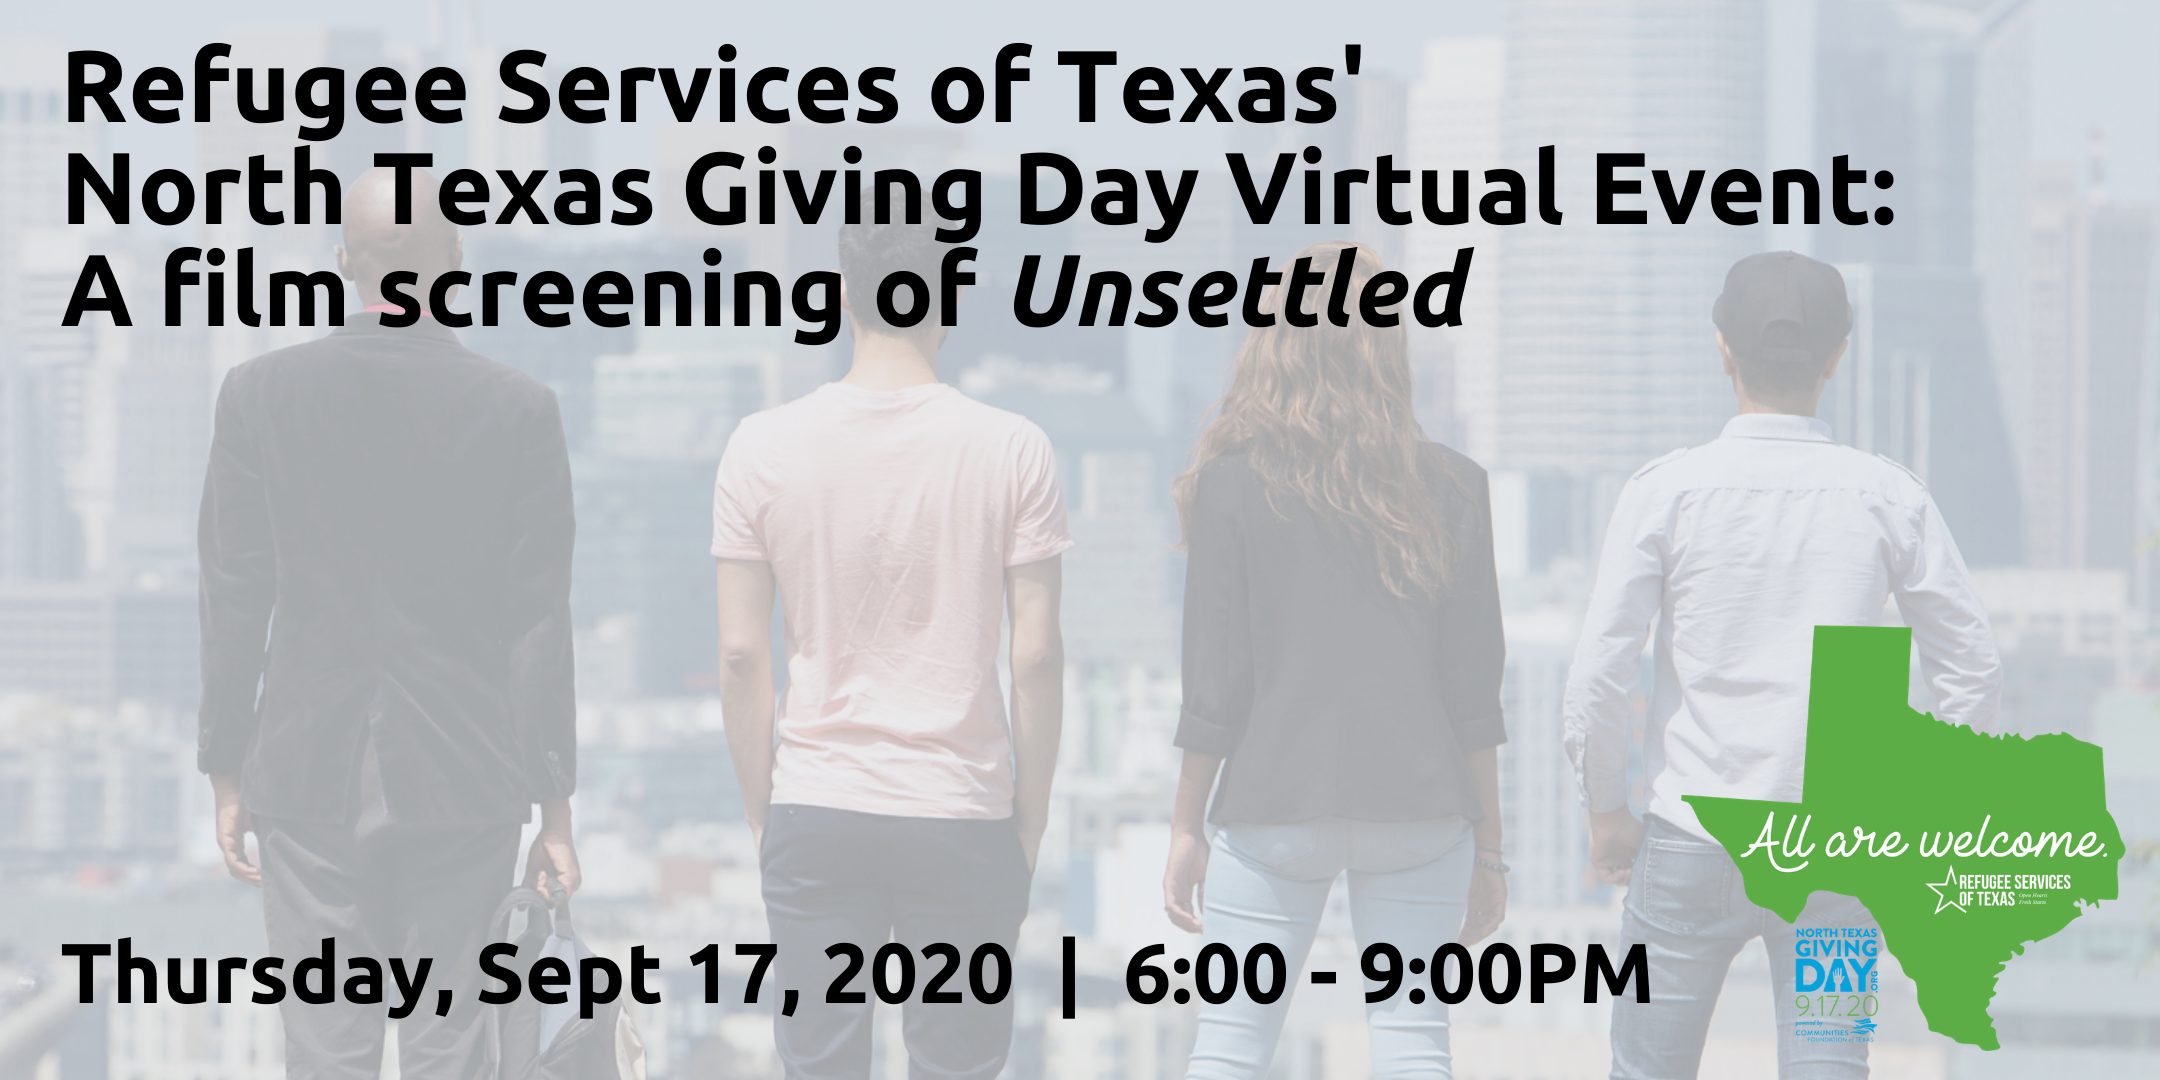 North Texas Giving Day Virtual Film Screening + Panel Discussion